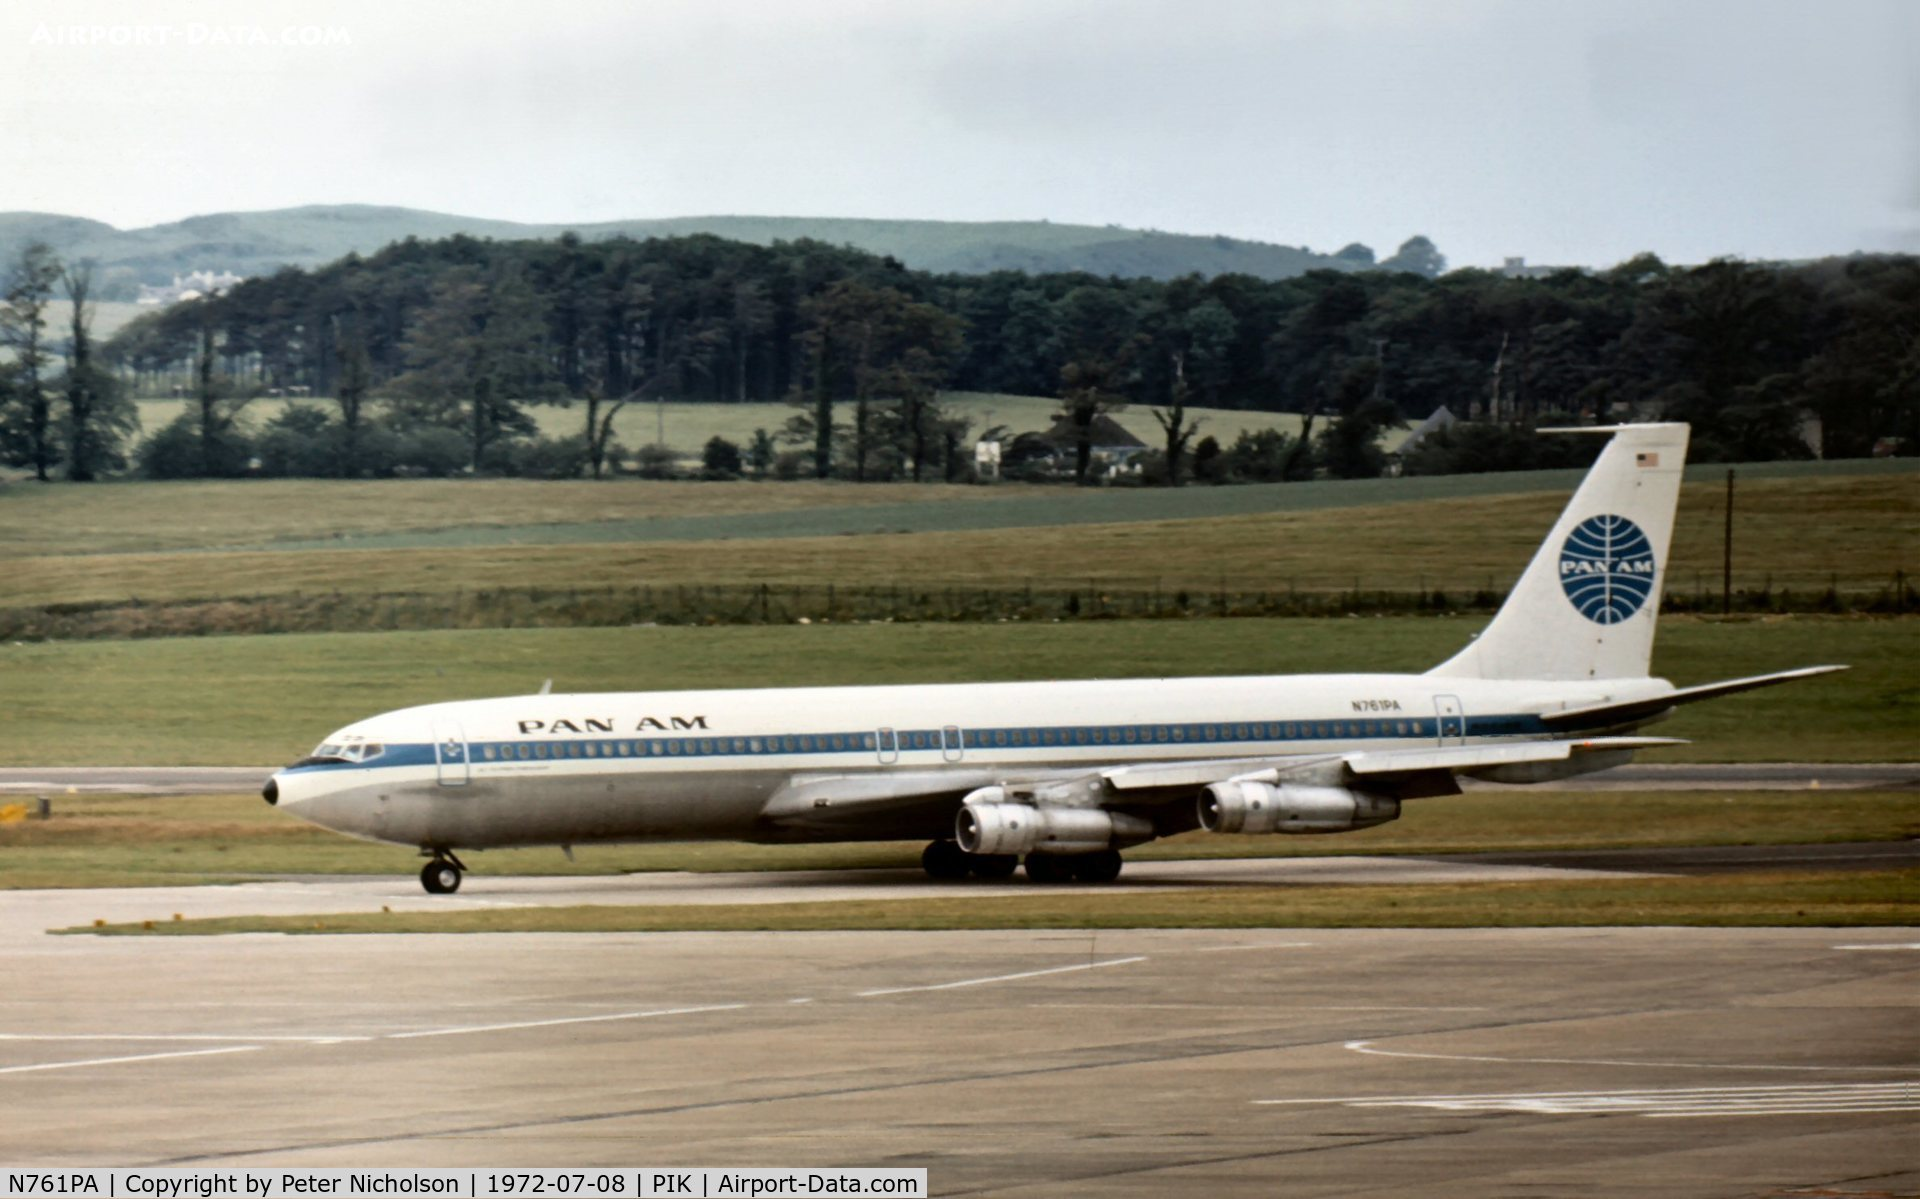 N761PA, 1962 Boeing 707-321B C/N 18336, Pan Am's Boeing 707-321B named Clipper Friendship taxying to the terminal at Prestwick in the Summer of 1972.